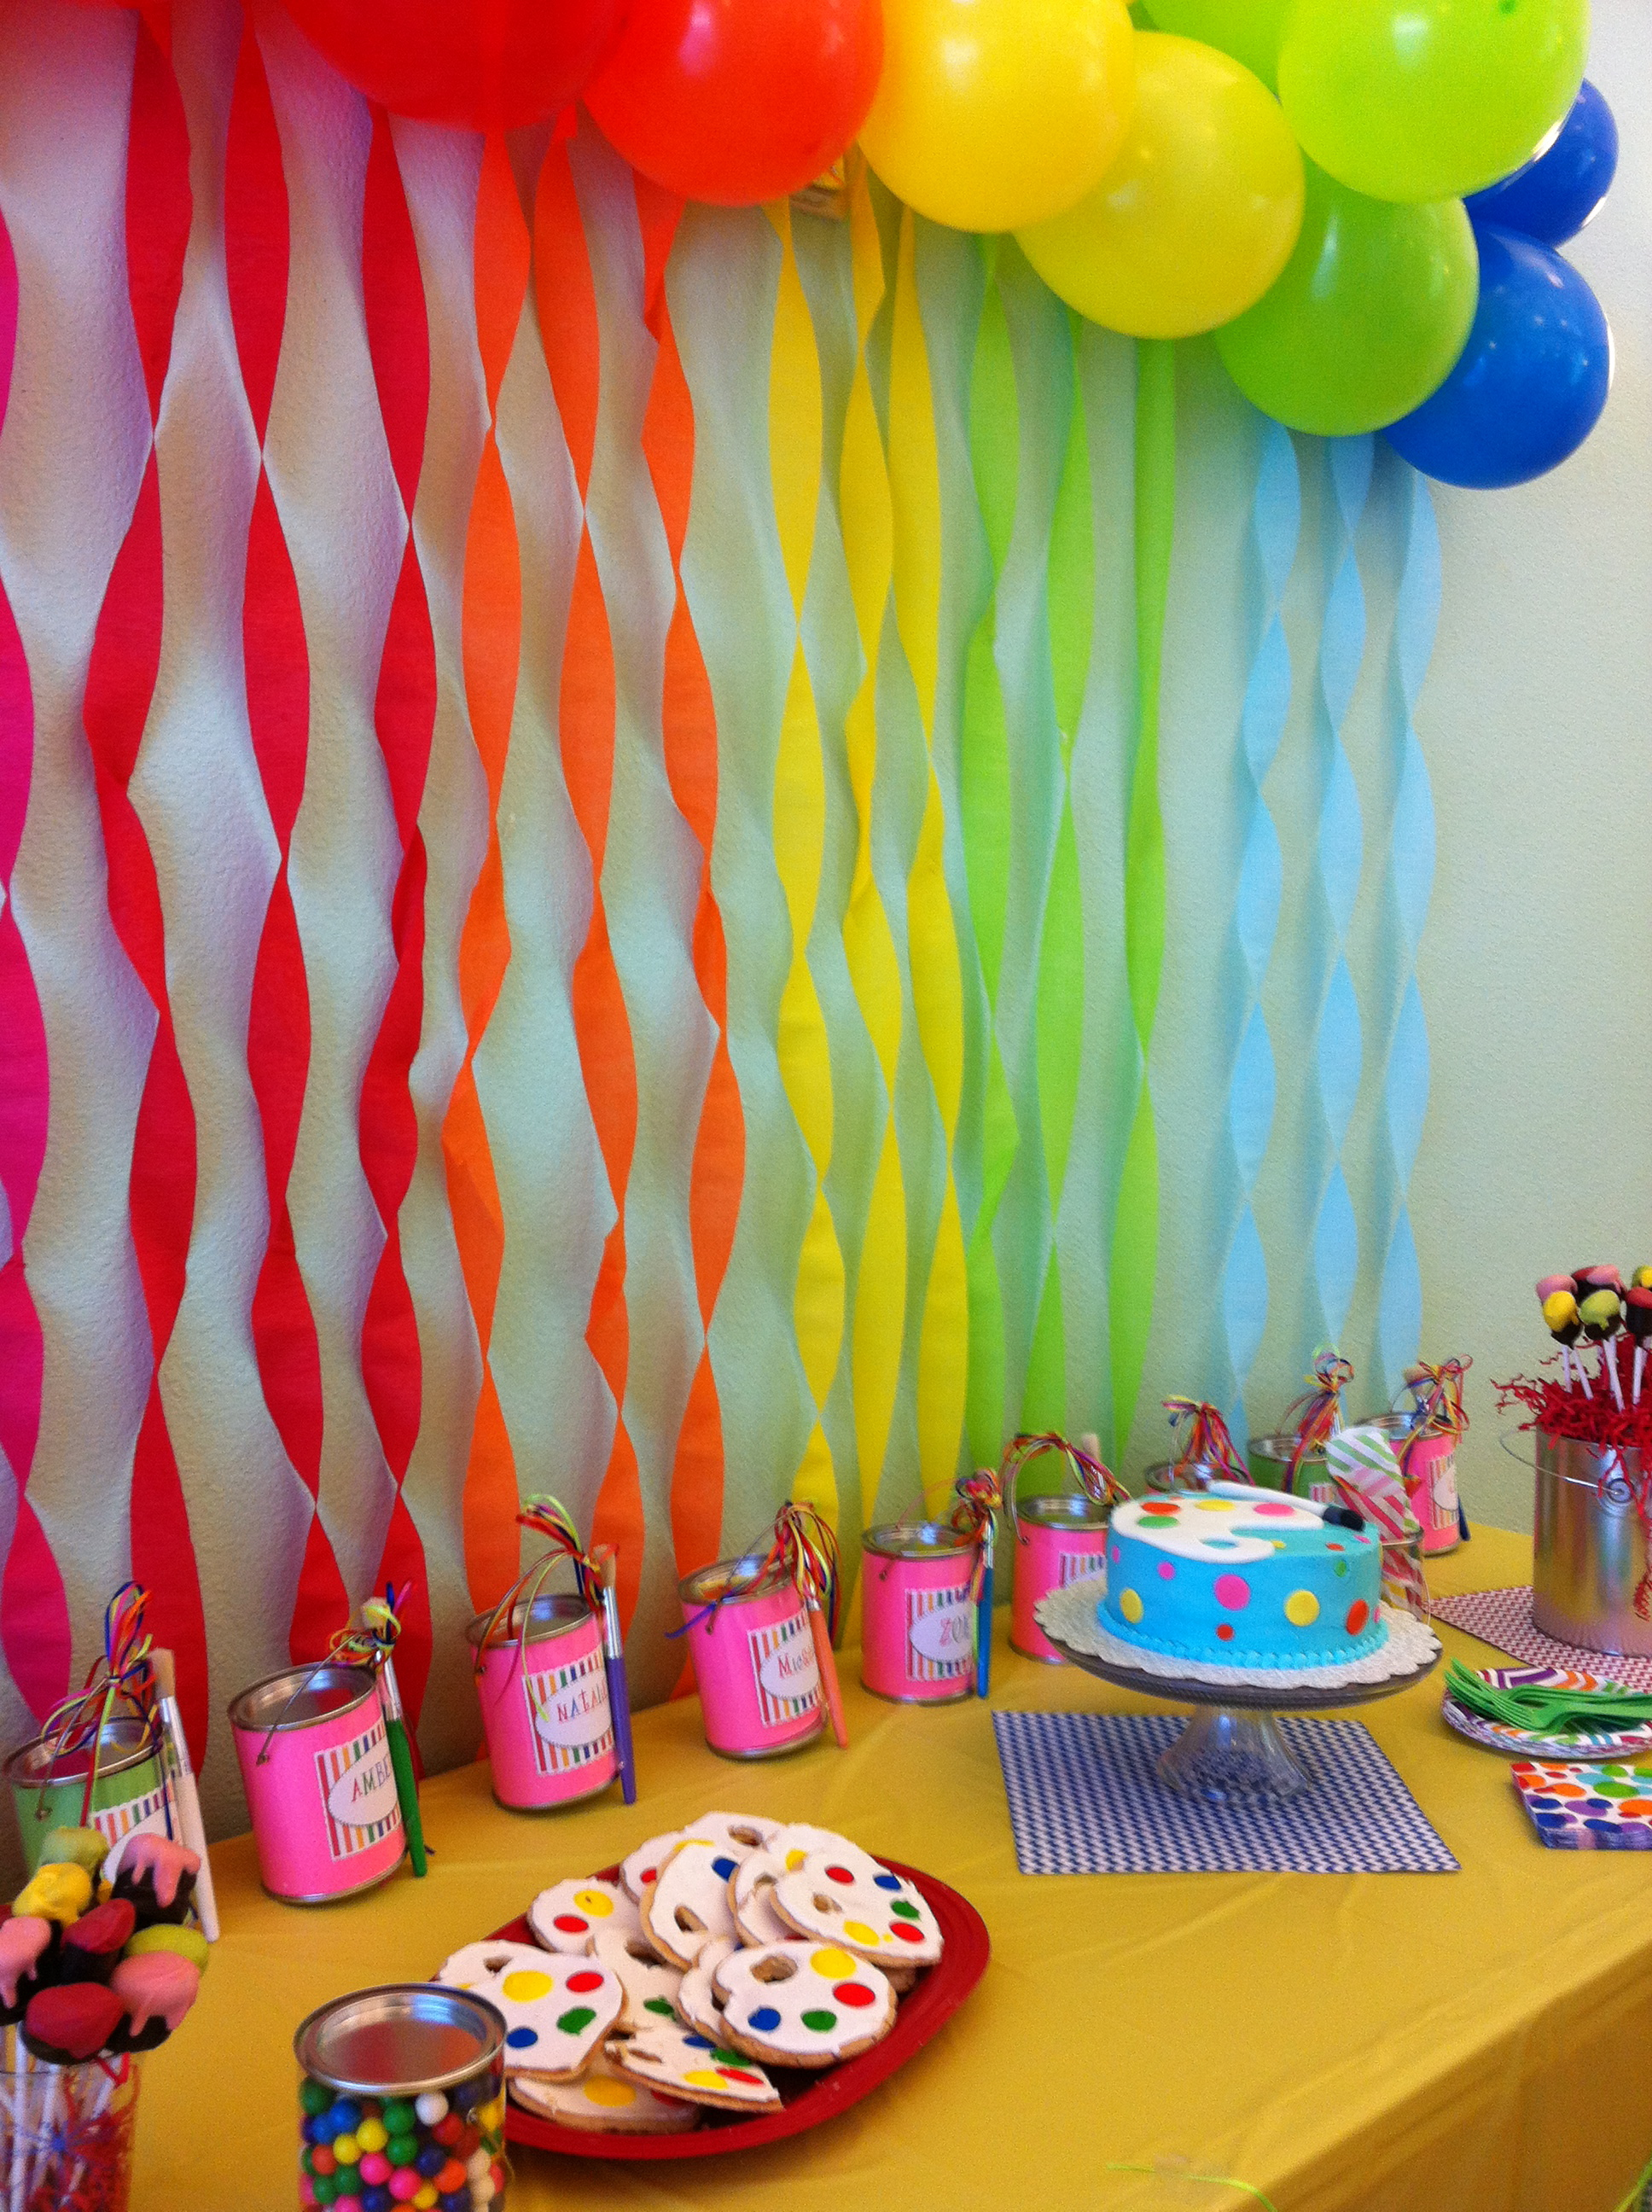 3 year old birthday party themes girl ; fb0185003ce045849531f50af3f7632d